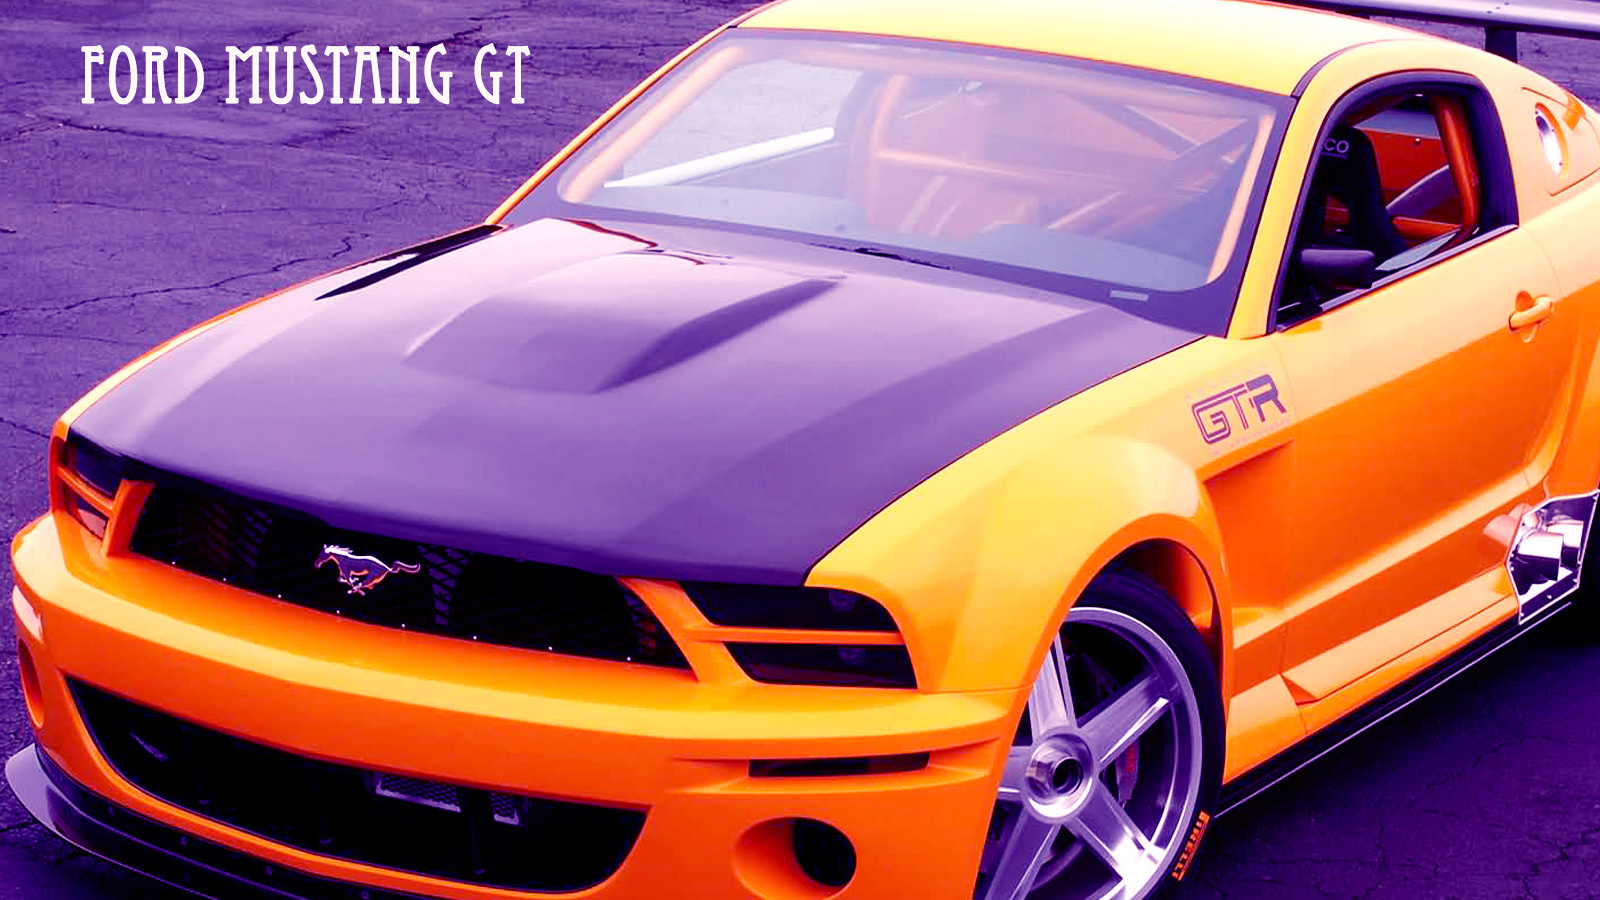 Ford Mustang GT Ford Wallpaper Mustang GT Ford Mustang GT Wallpaper 1600x900